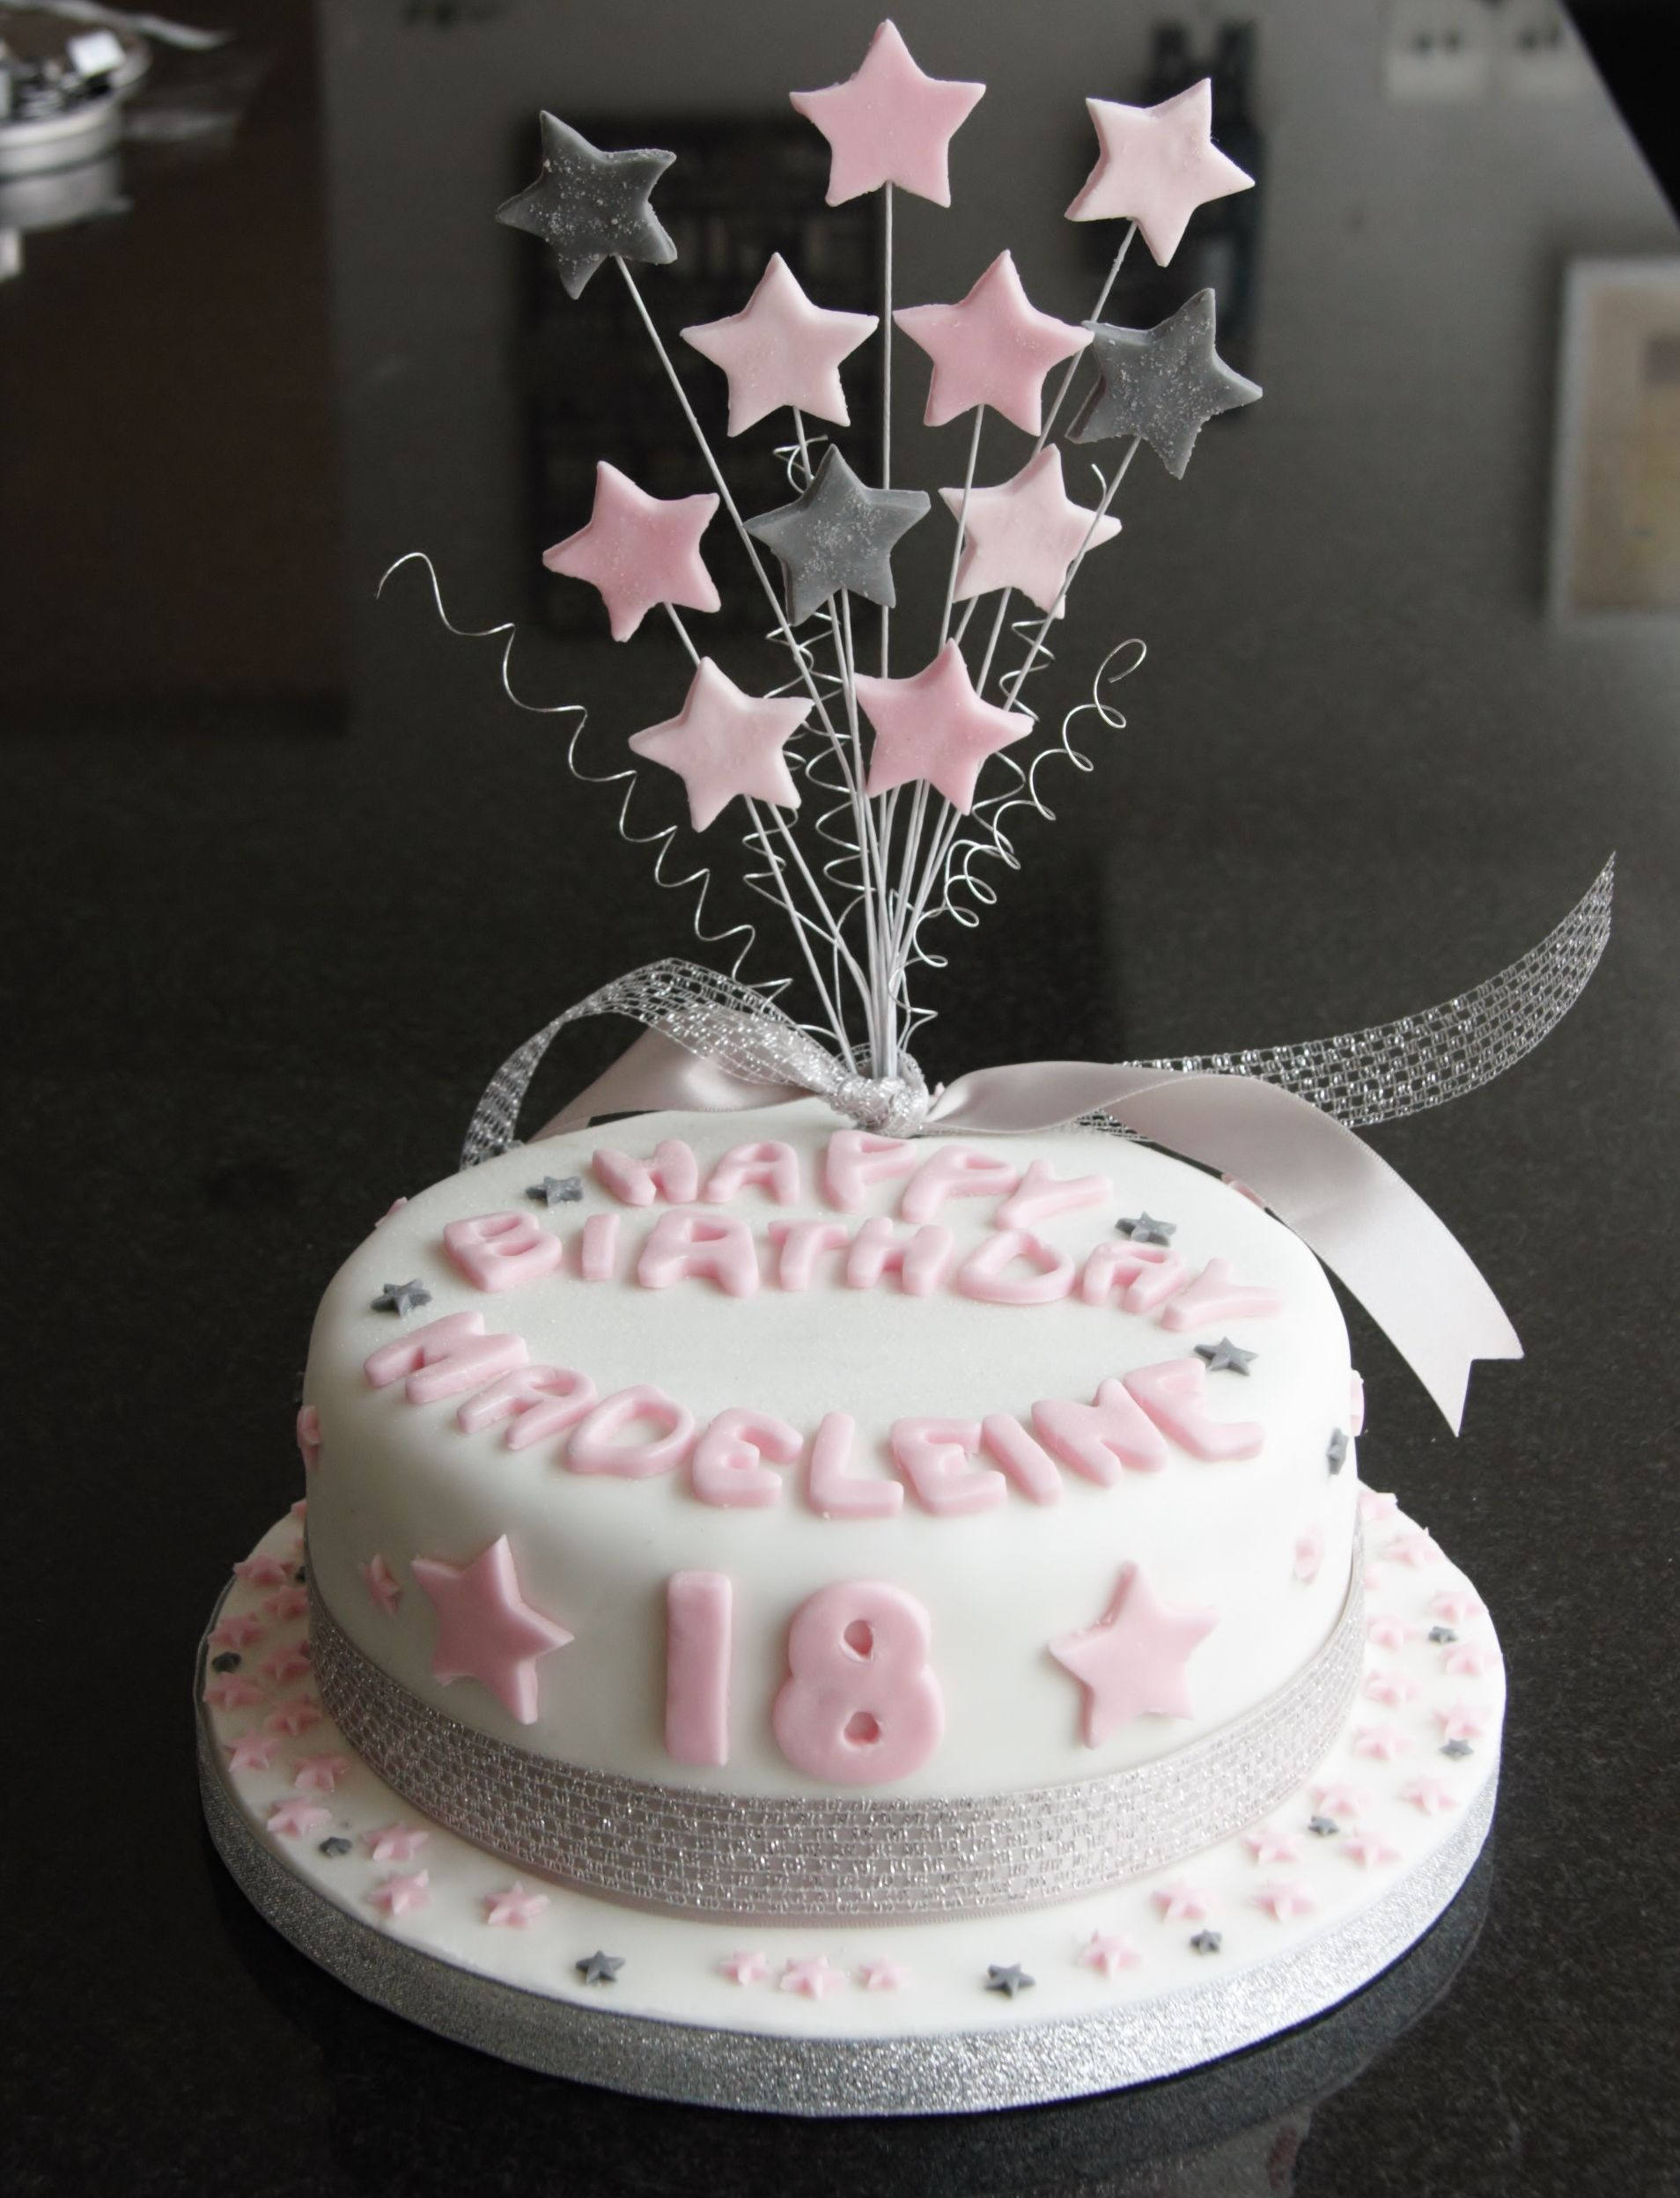 Cake Decoration For 18th Birthday : 18th birthday cakes - Google Search Shannon s 18th ...